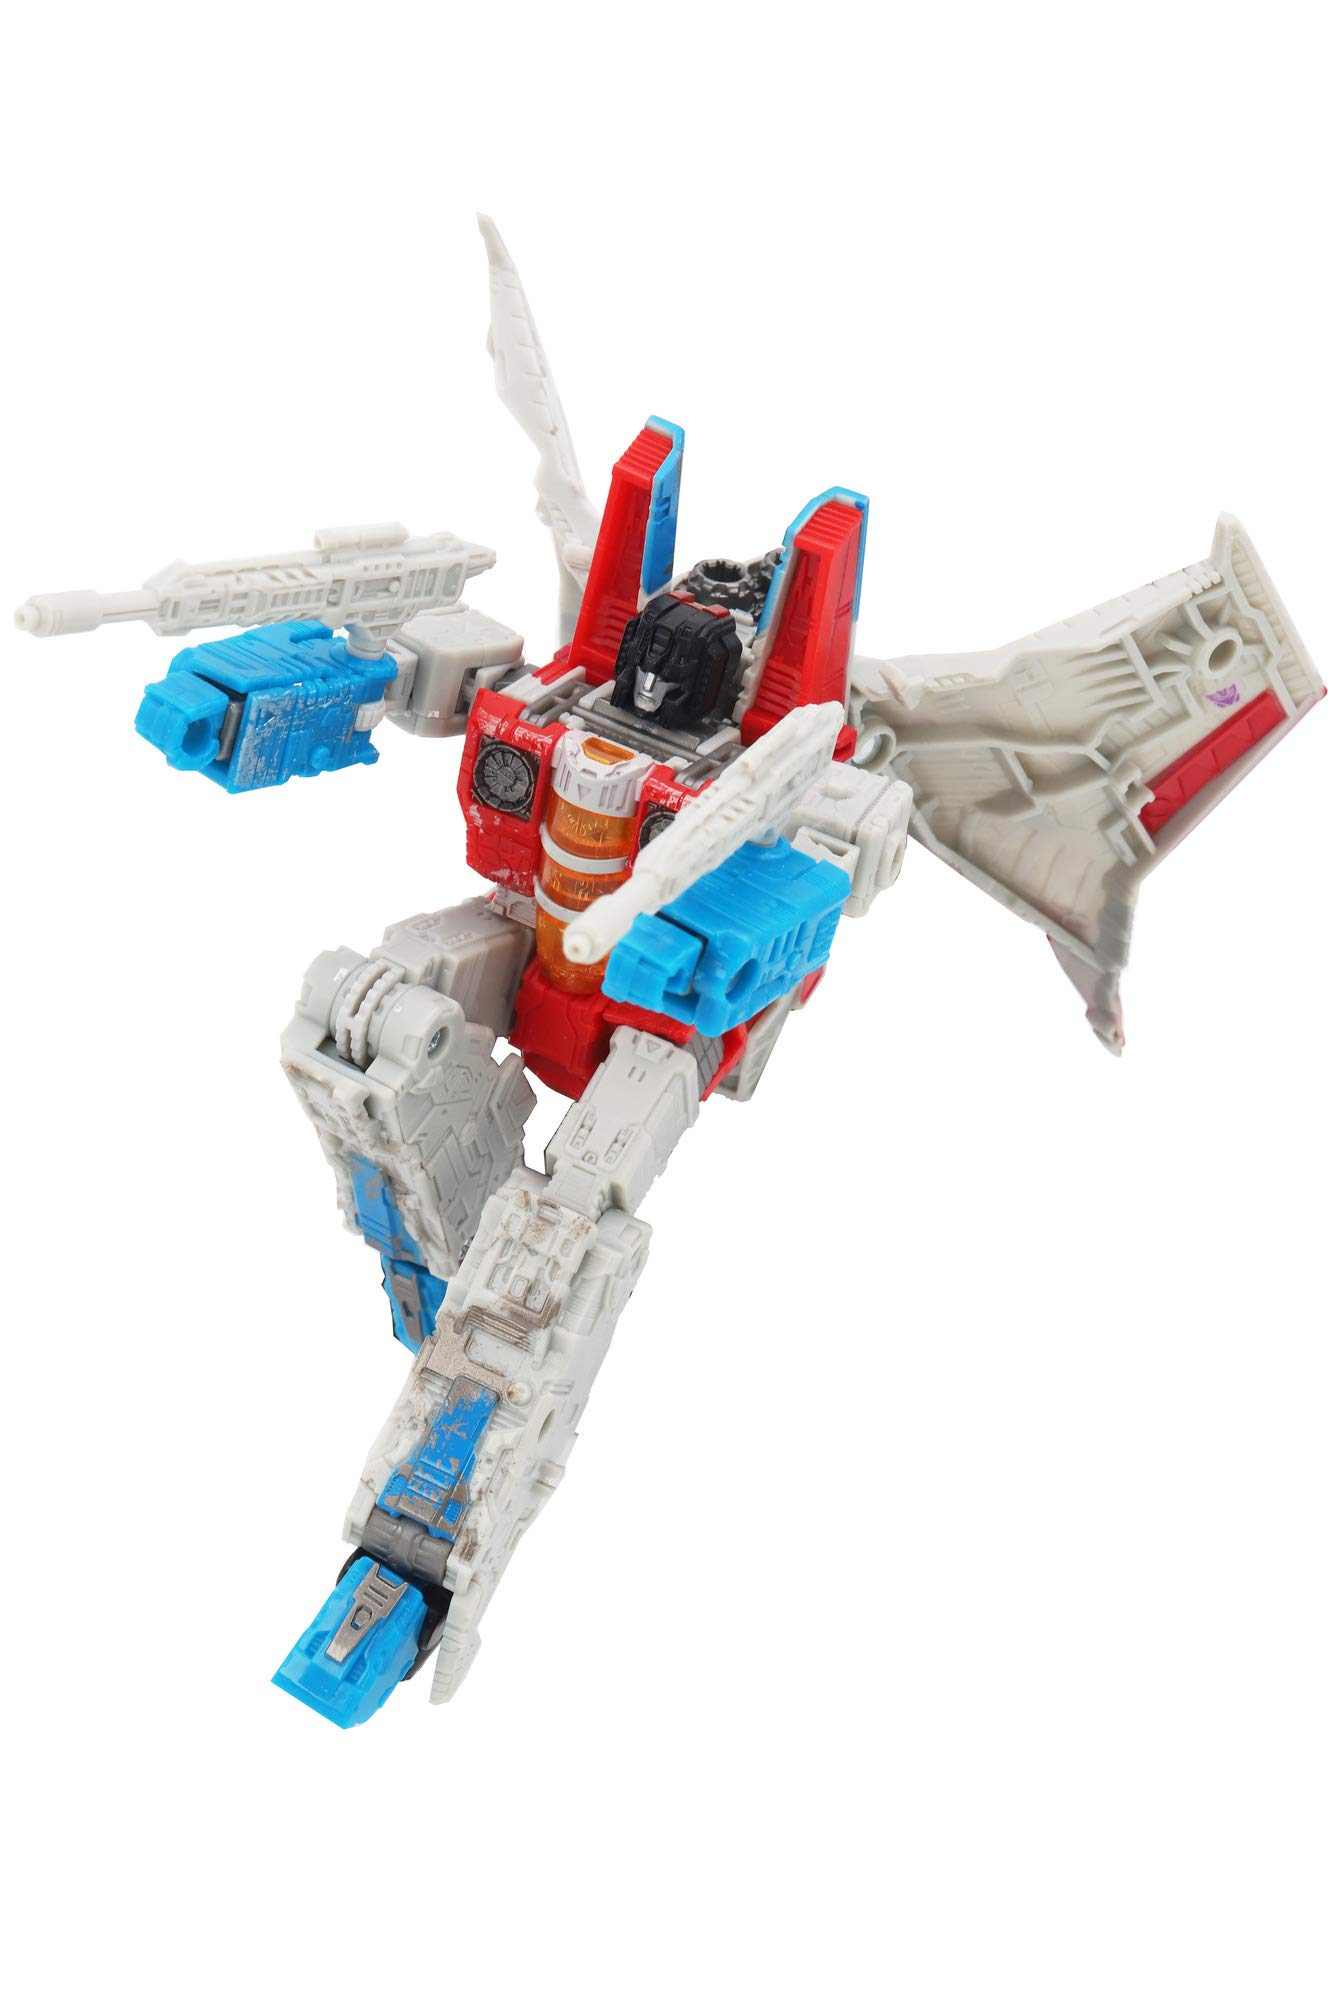 Transformers Toys Generations War for Cybertron Voyager Wfc-S24 Starscream Action Figure - Siege Chapter - Adults & Kids Ages 8 & Up, 7'' by Transformers (Image #5)